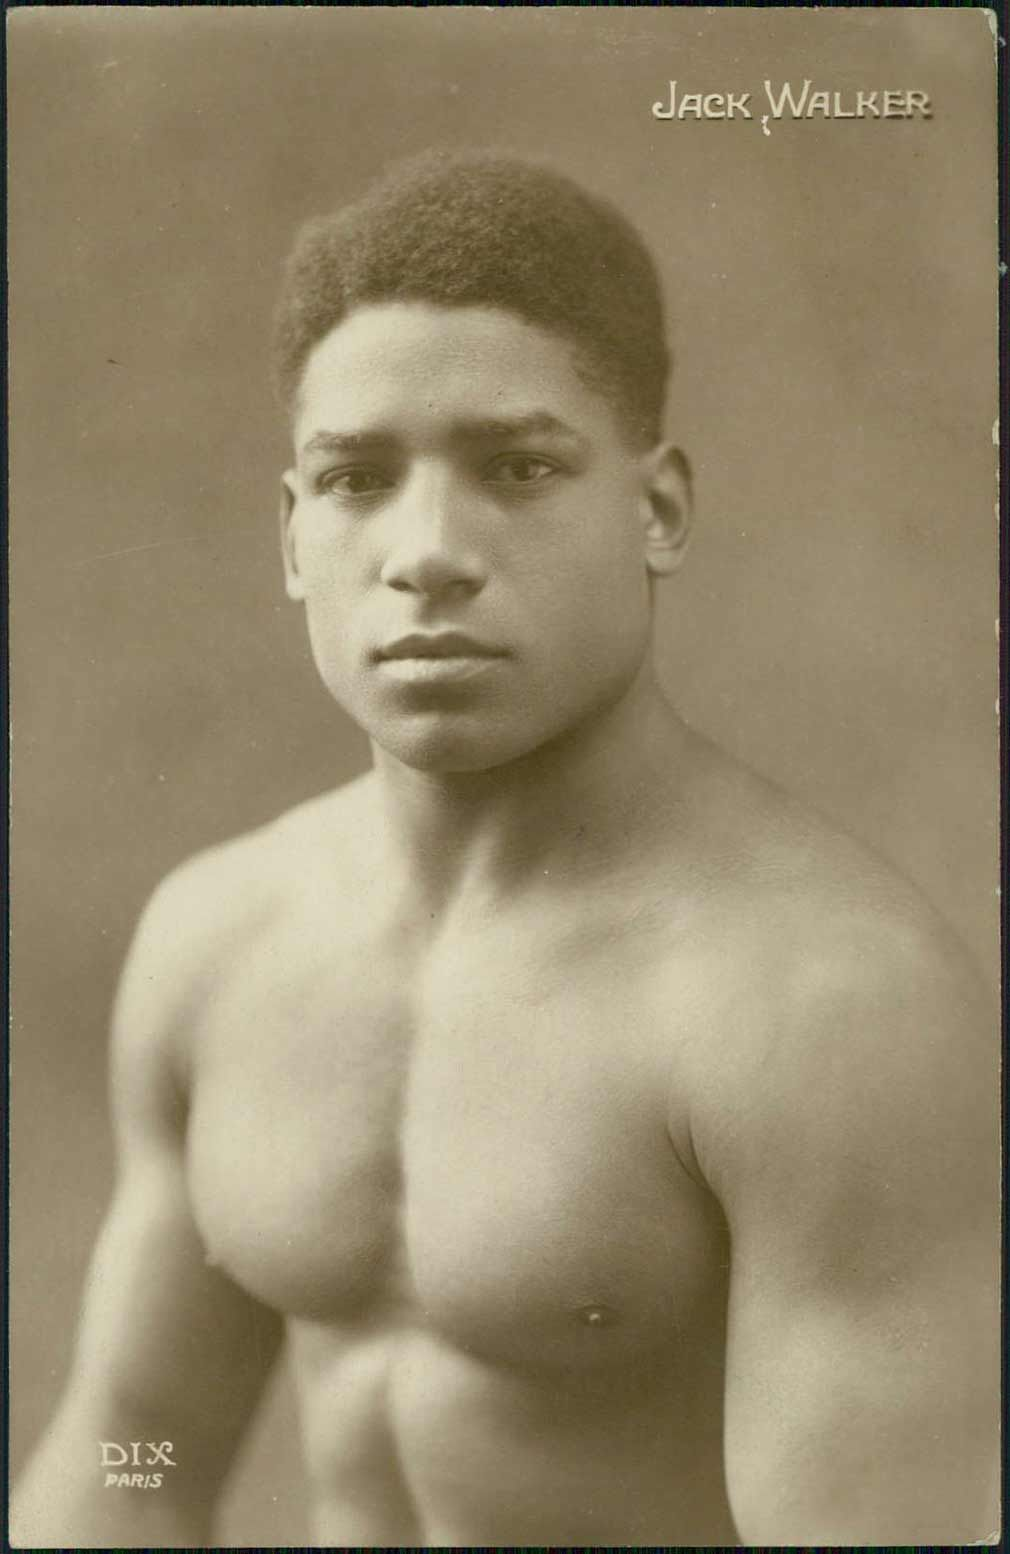 the 1920s and 1930s Italian boxer and the former Italian and